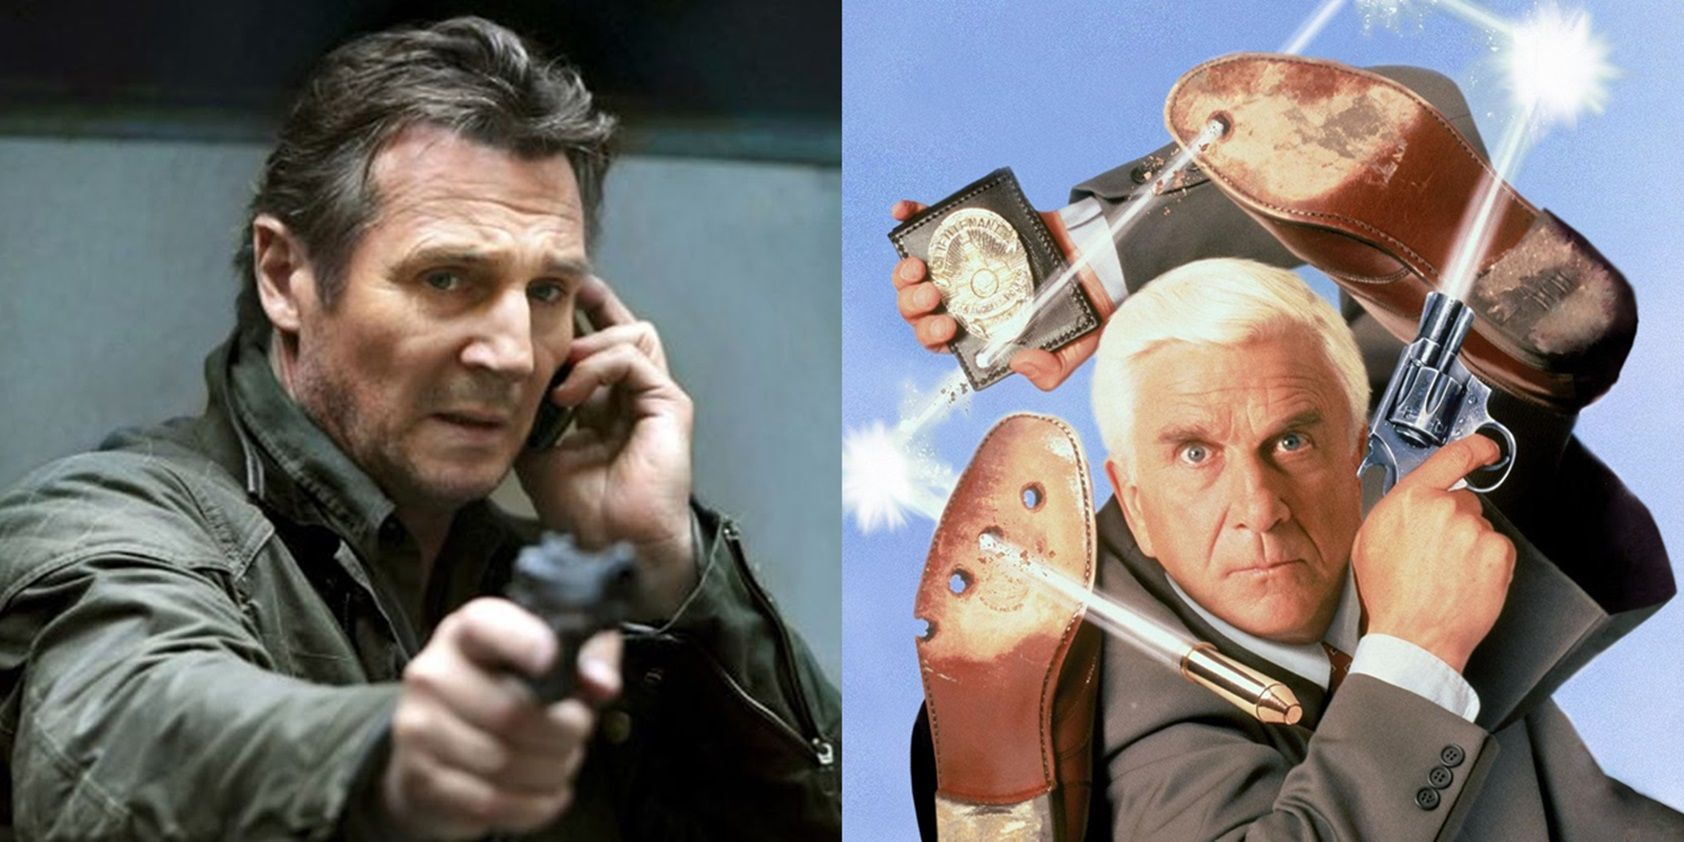 The Naked Gun Reboot? Oh I like THAT! - The Average Nobodies